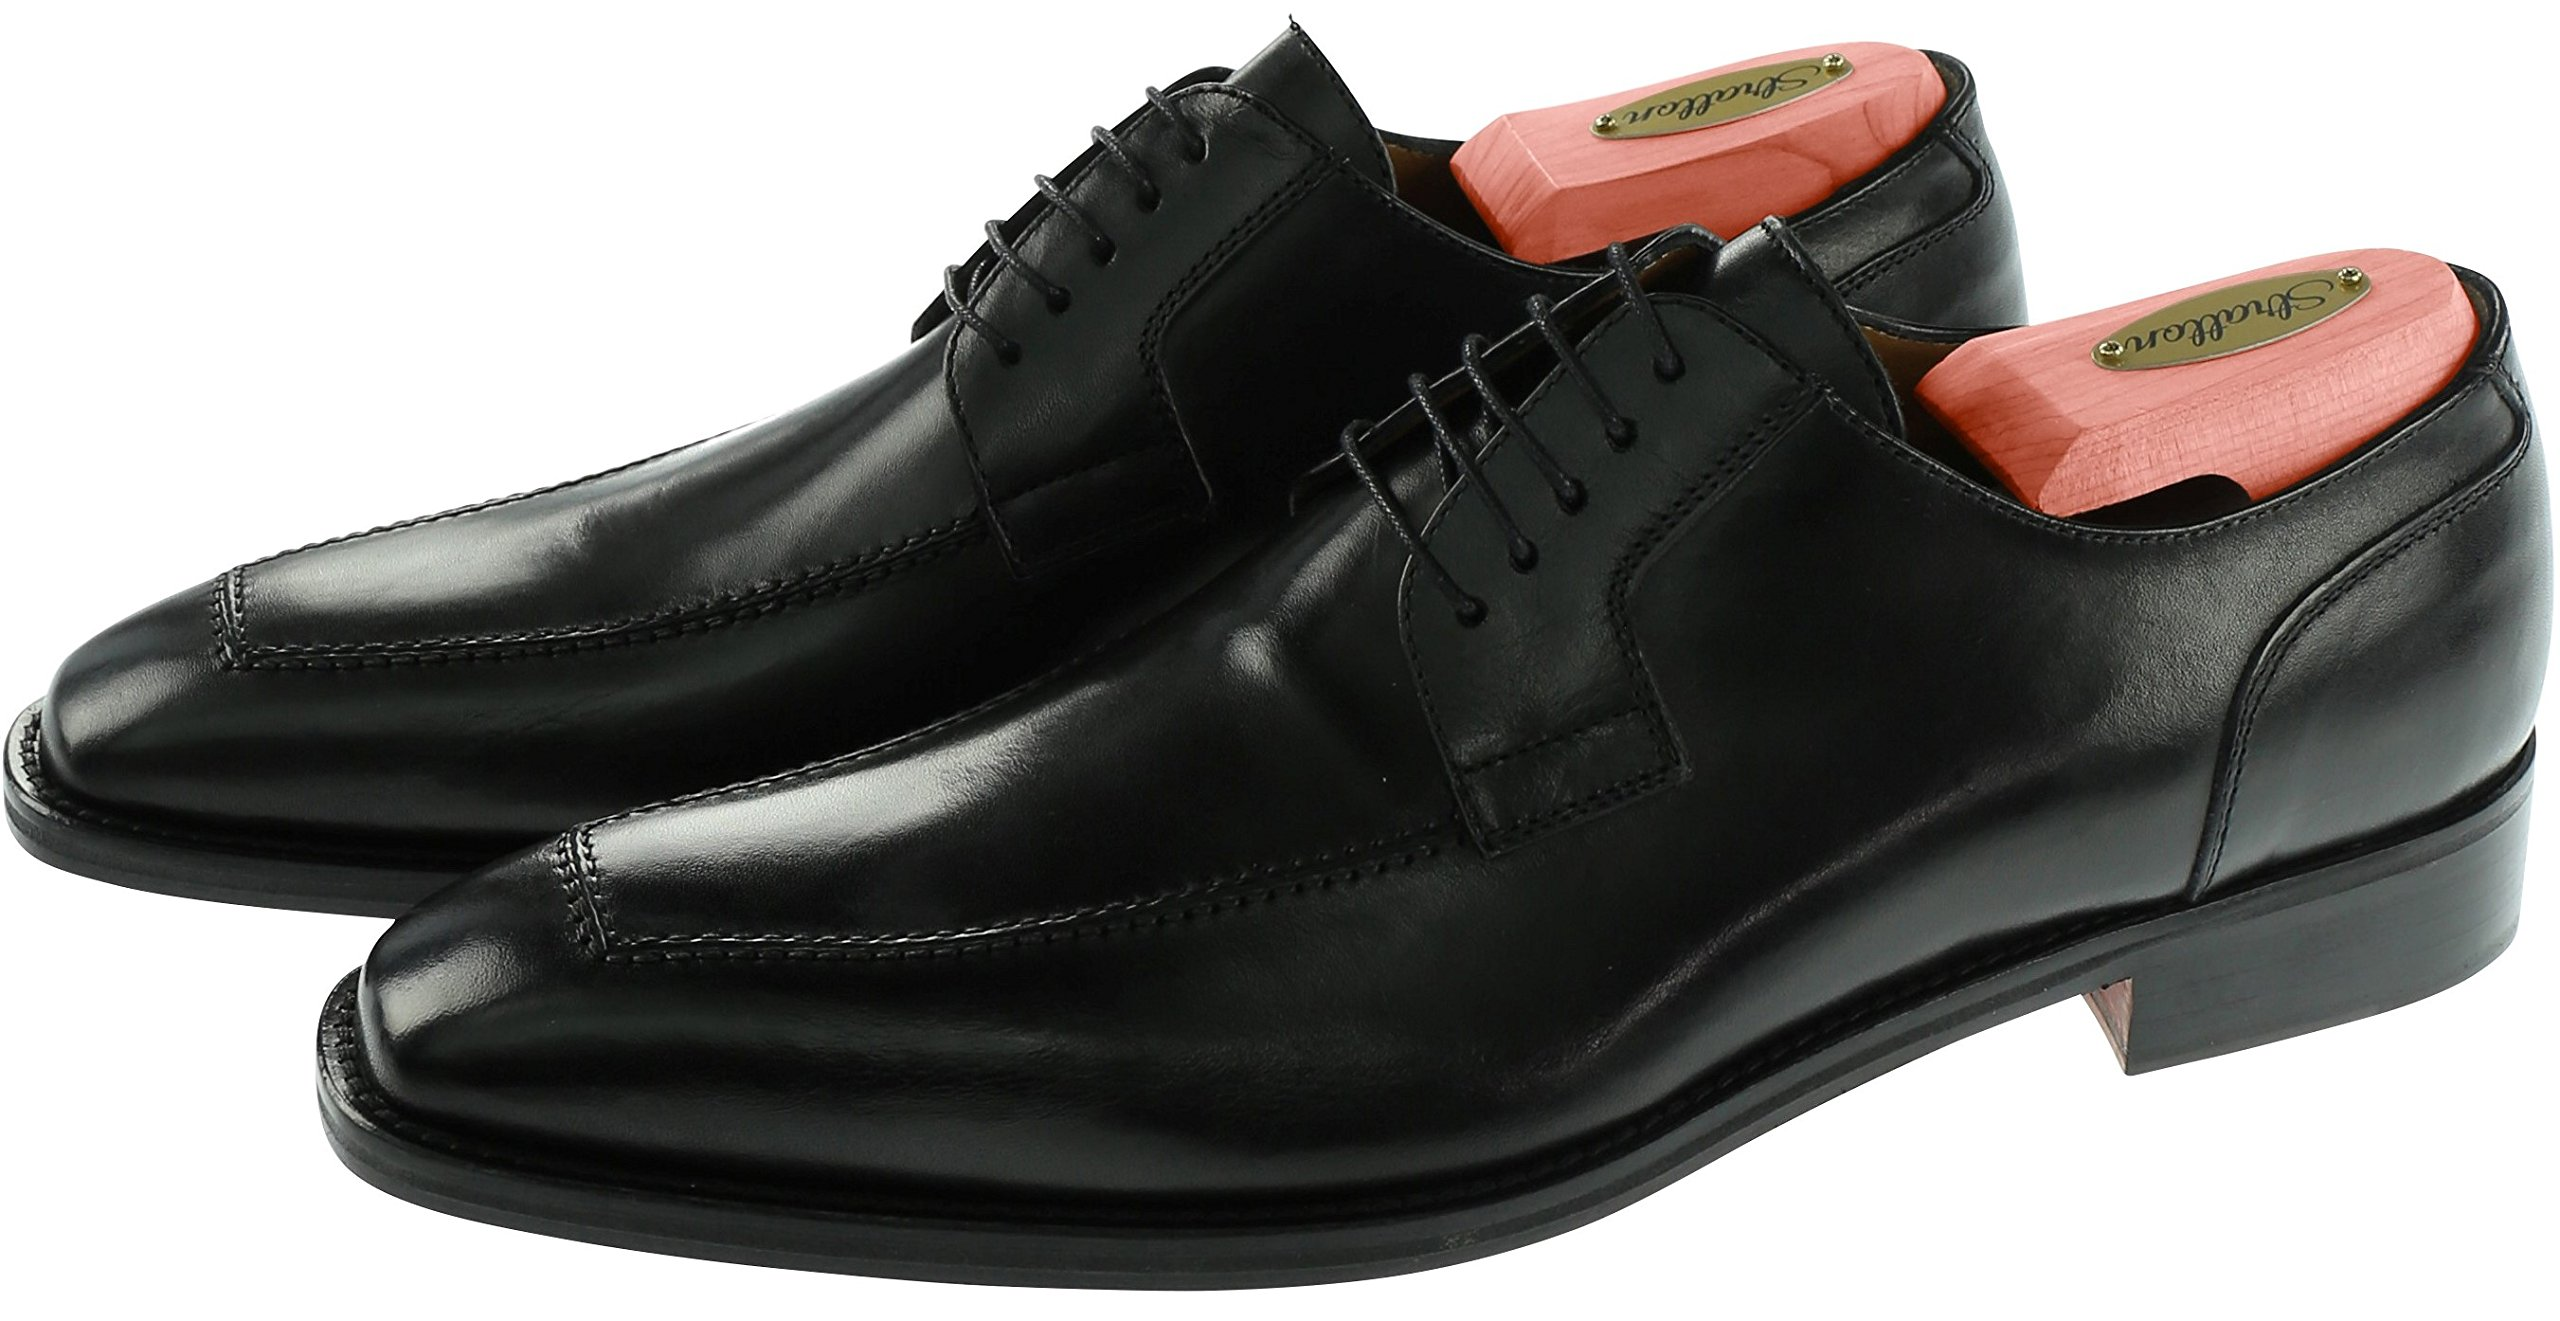 STRATTON MEN'S CEDAR SHOE TREE 2-PACK (for 2 pairs of shoes) (Medium, 2 Pairs, Full Toe) by Stratton (Image #5)